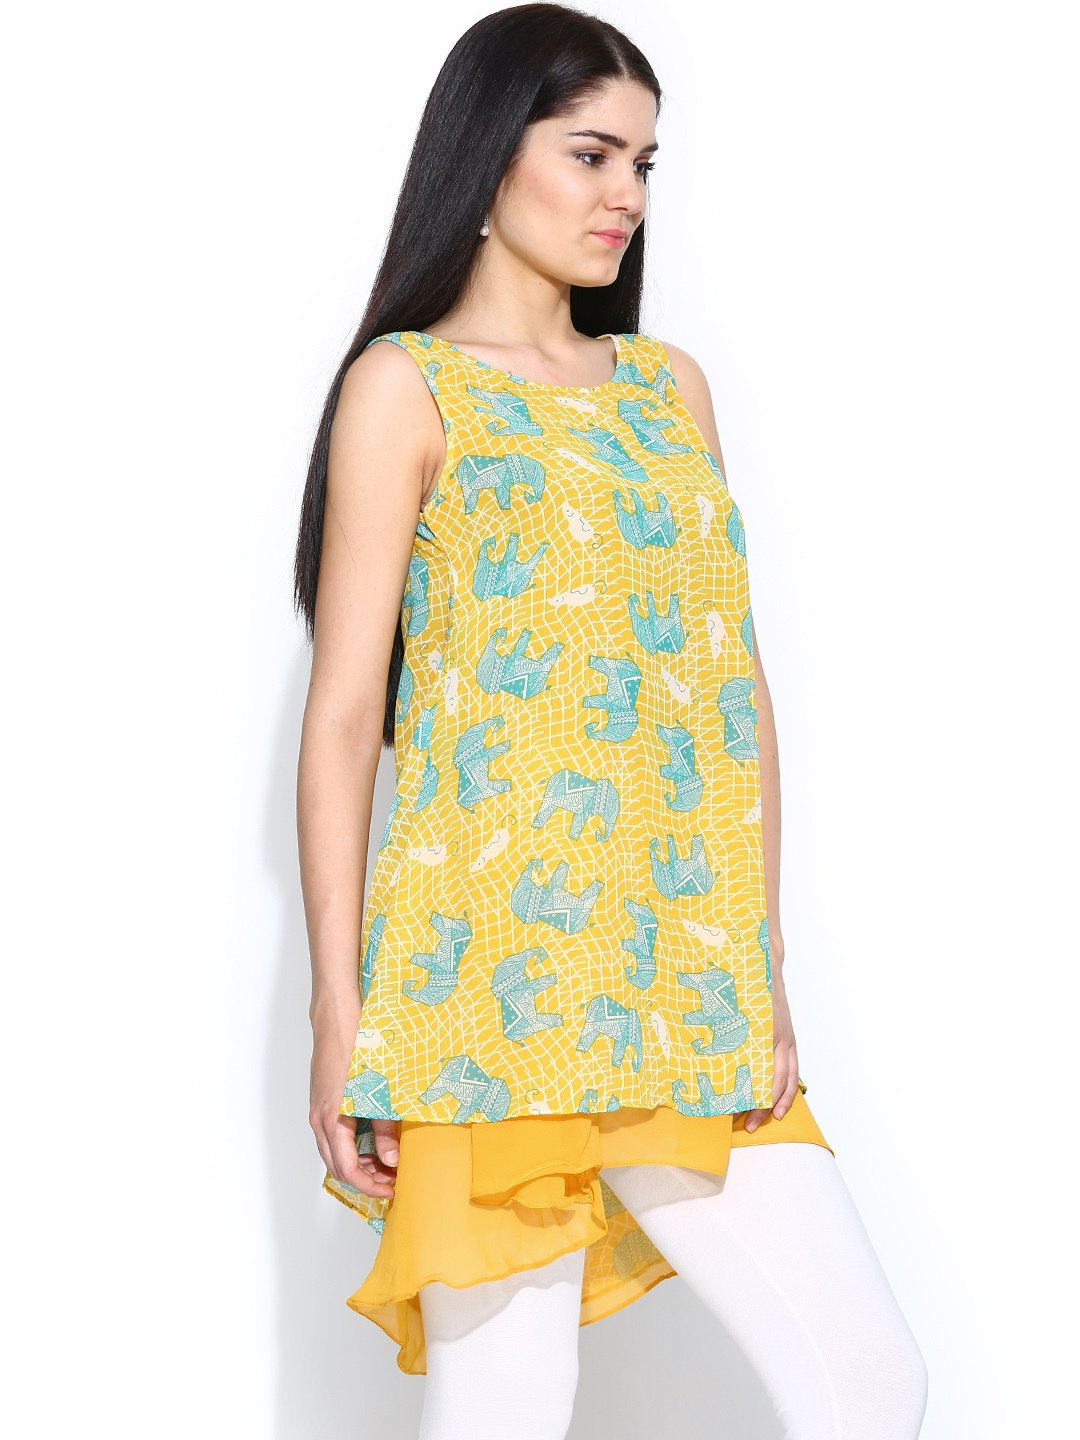 Shop Online at shopnow-ahoqsxpv.ga for the Latest Womens Yellow Tunic Shirts, Tunics, Blouses, Halter Tops & More Womens Tops. FREE SHIPPING AVAILABLE!